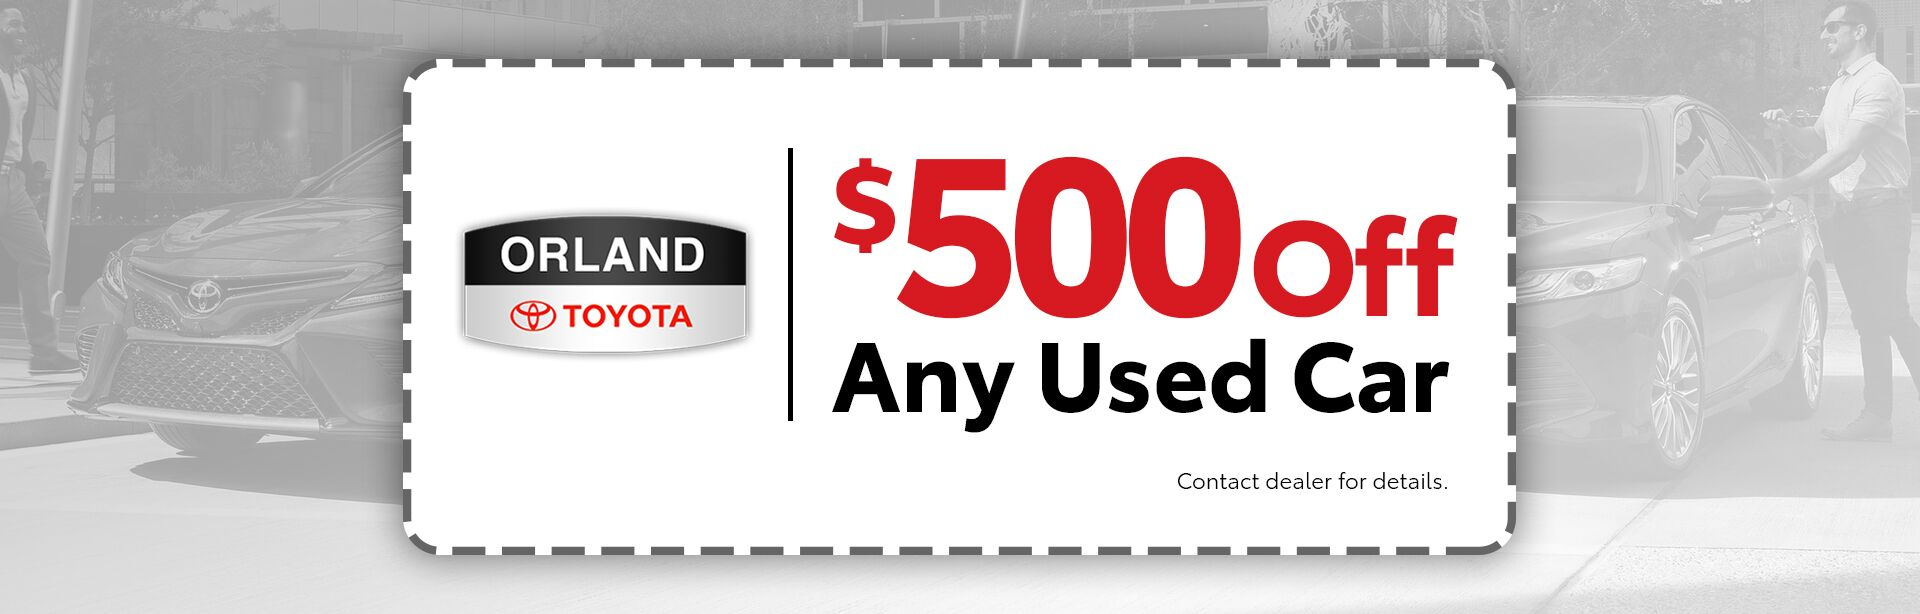 $500 Off Pre-Owned